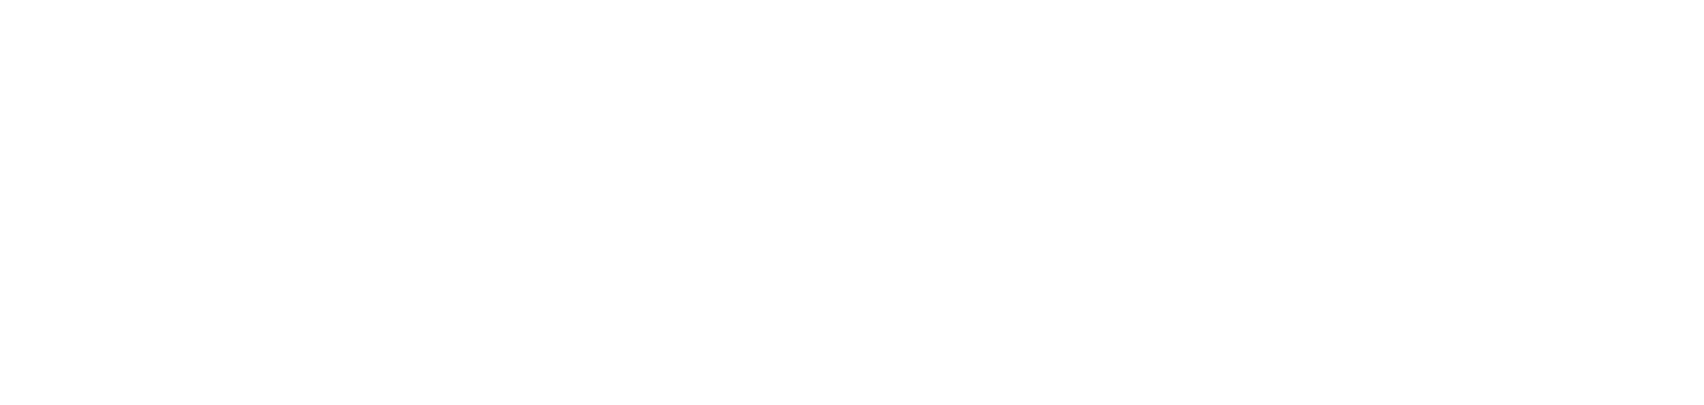 Hawkeye Systems, Inc.